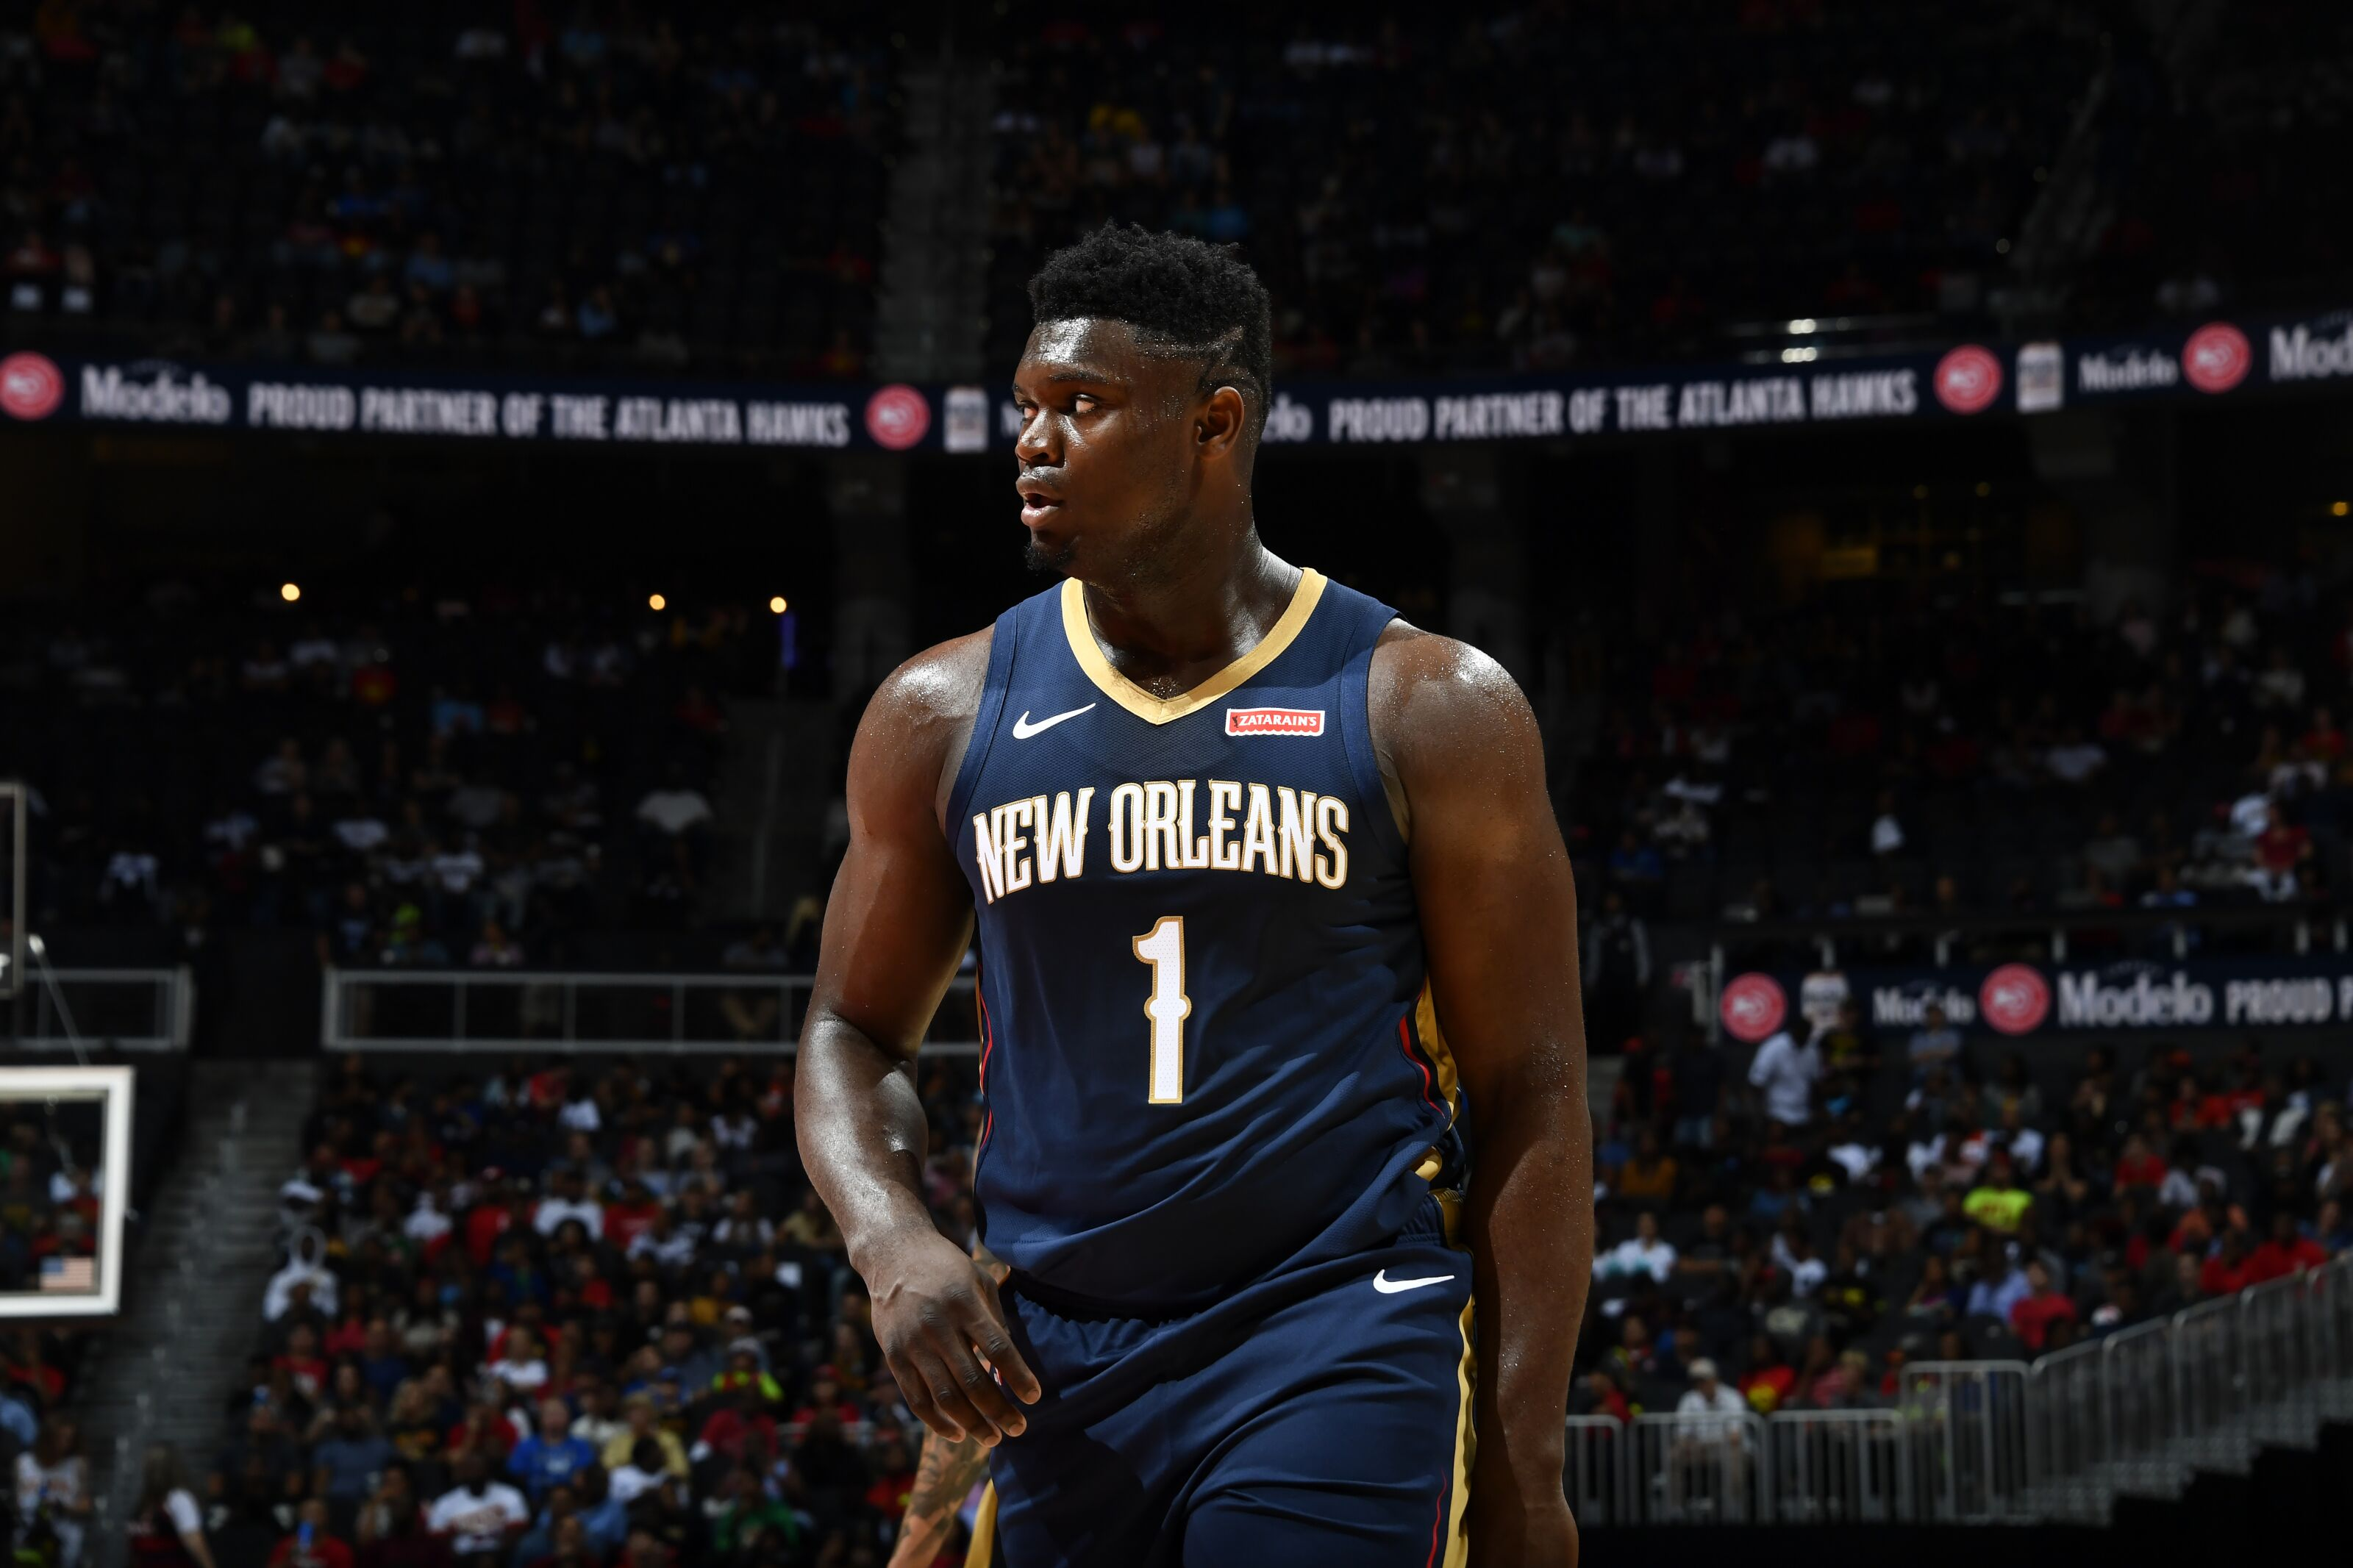 NBA Season Preview 2019-20: The 5 biggest questions for the New Orleans Pelicans